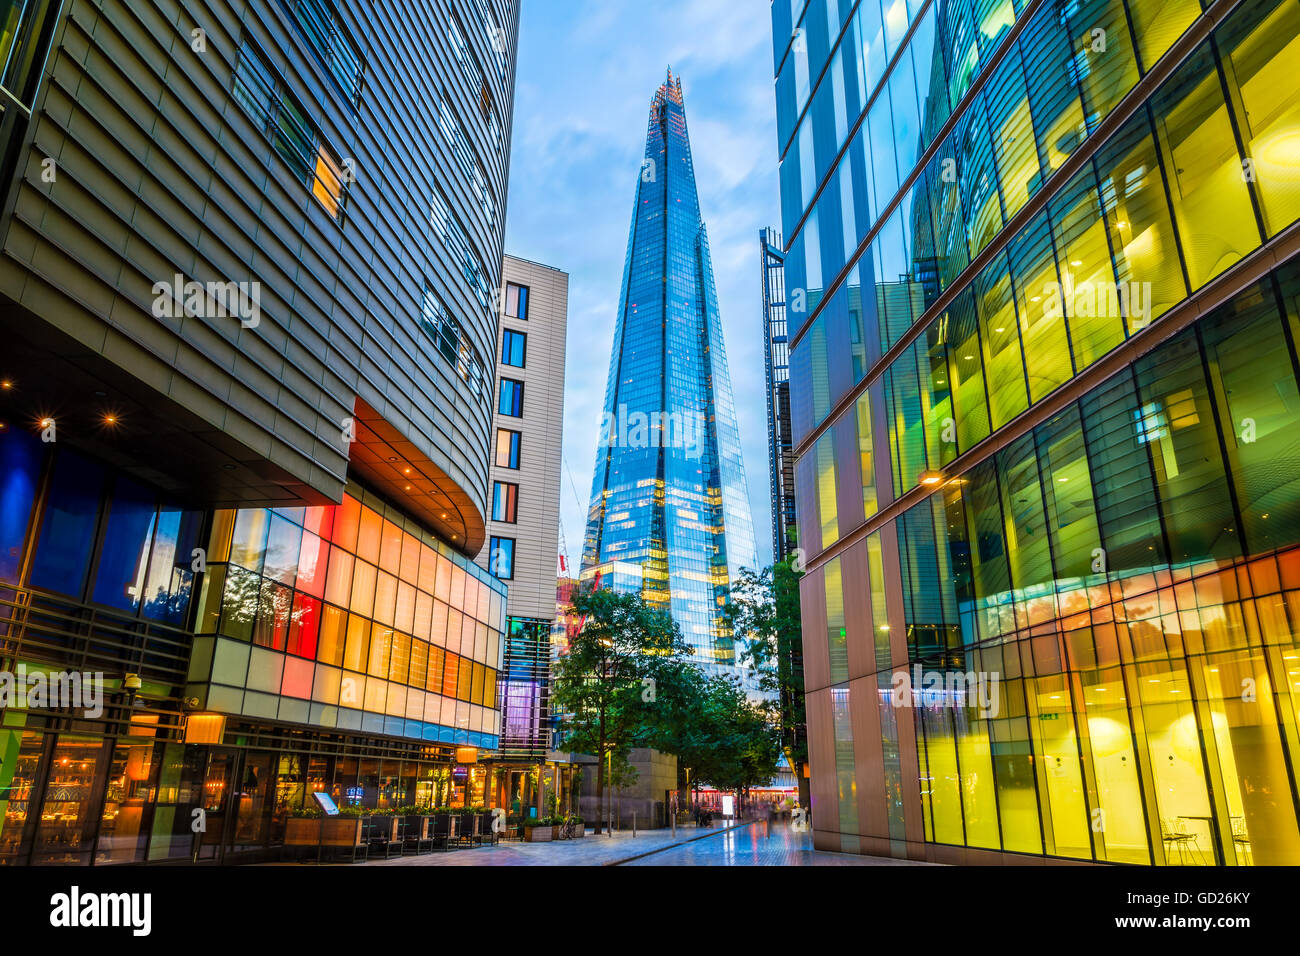 Street view of modern buildings in London, including The Shard - Stock Image